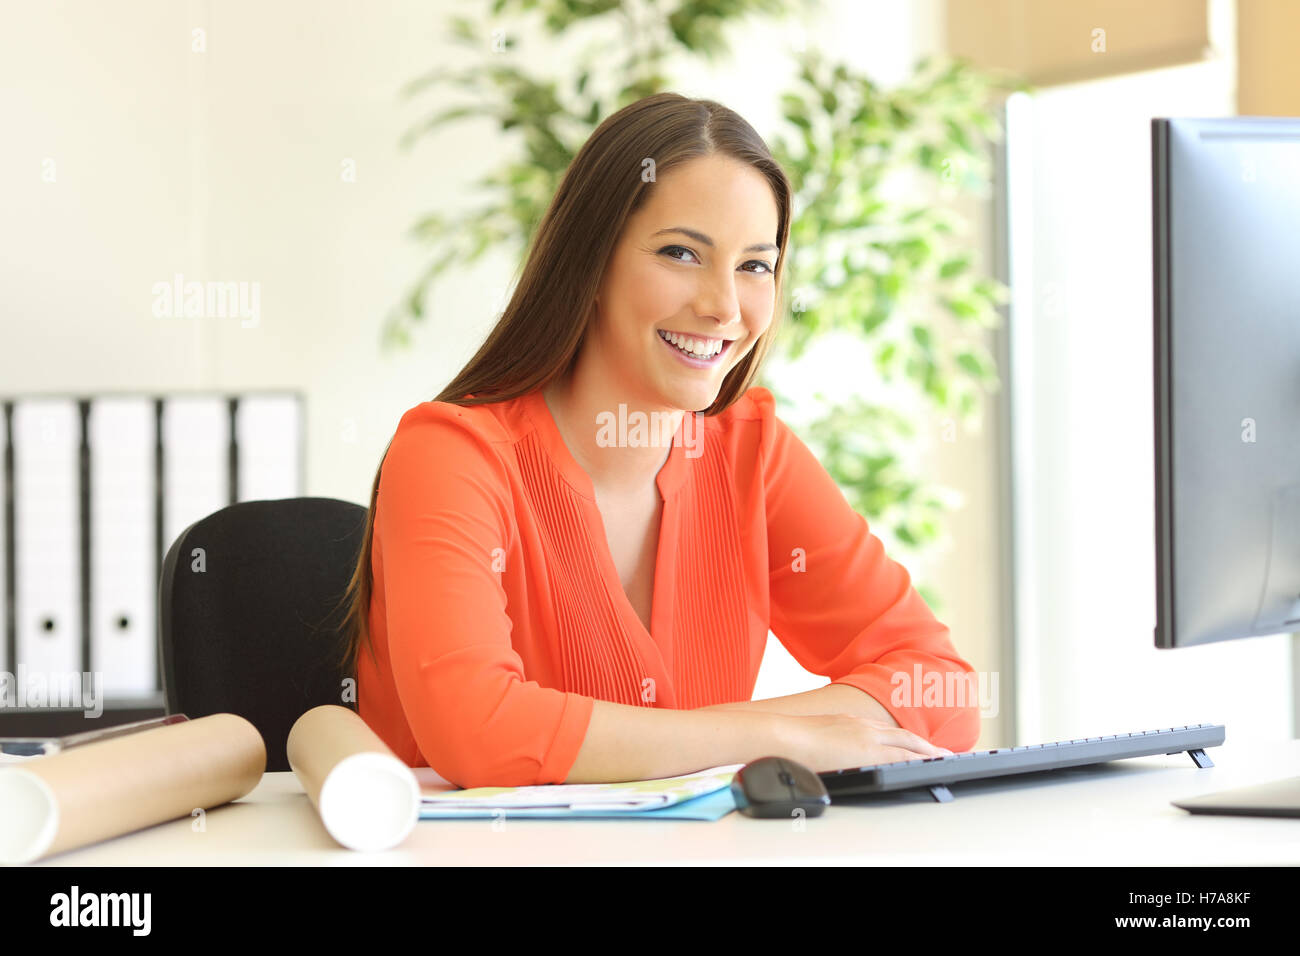 Designer Or Architect Posing And Looking At You Sitting In A Desktop In The  Office With A Window In The Background